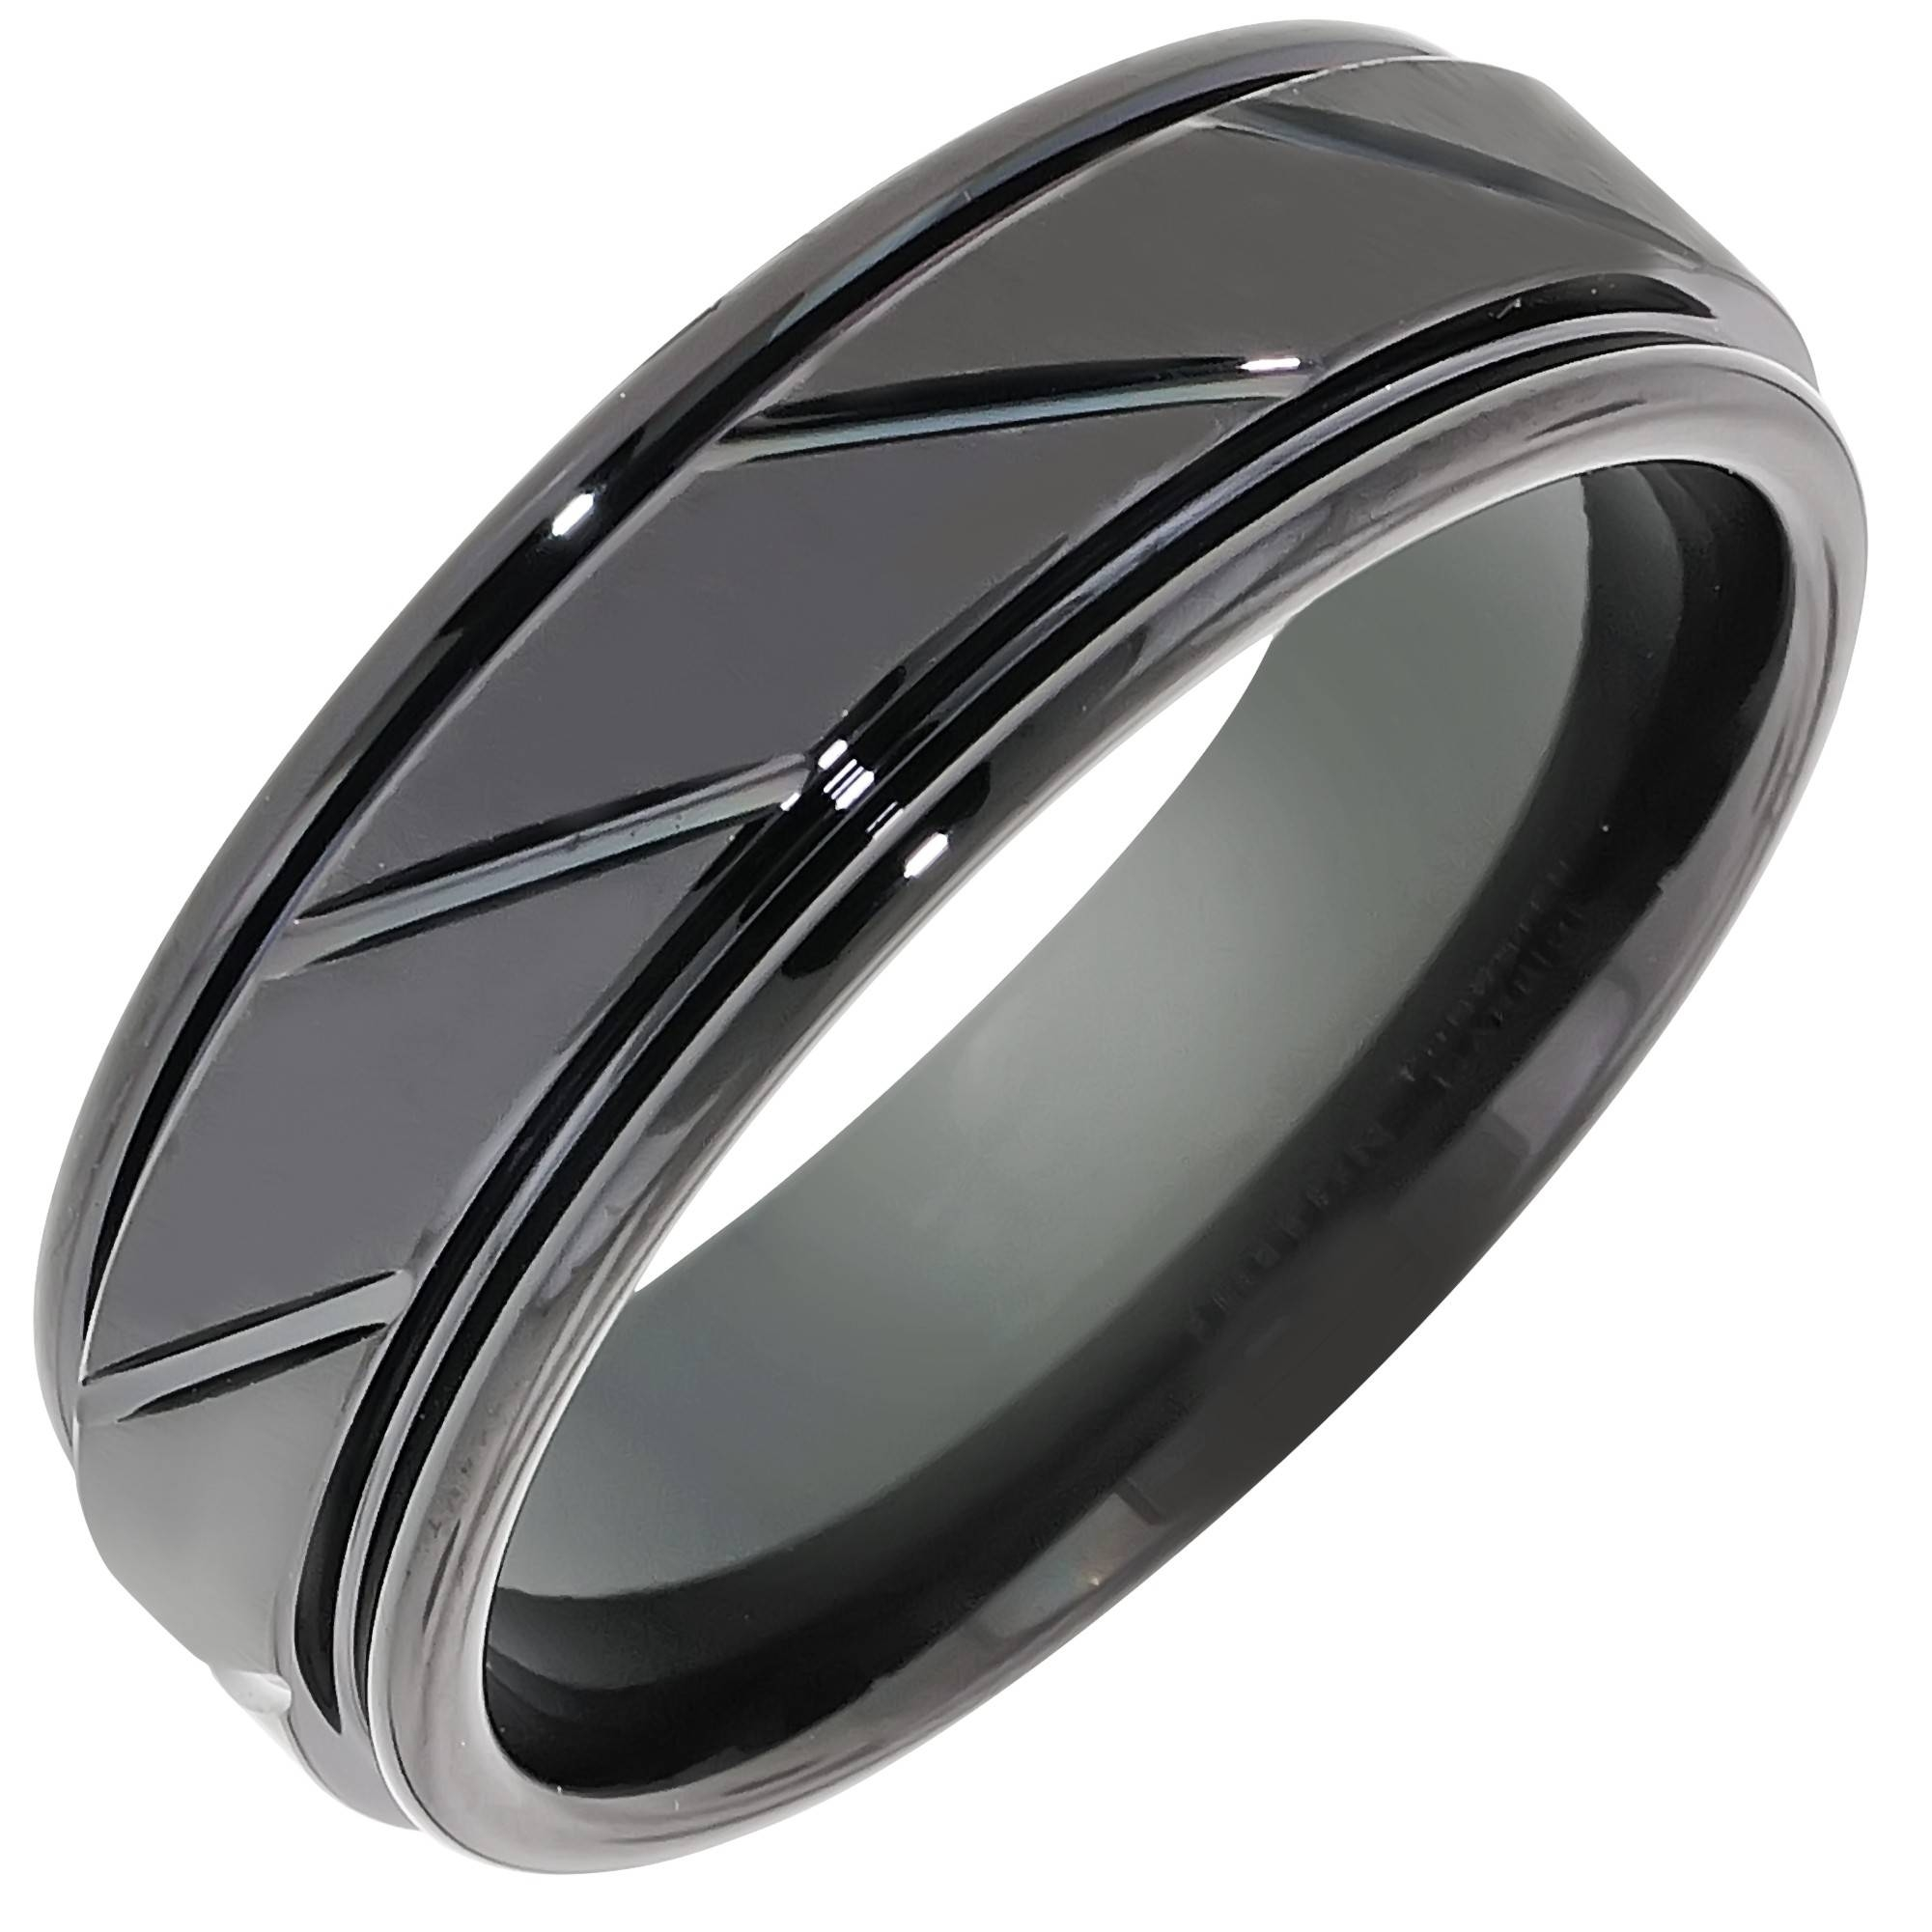 Mens Comfort Fit Wedding Band In Black Tungsten (7Mm) Throughout 7Mm Tungsten Wedding Bands (View 2 of 15)